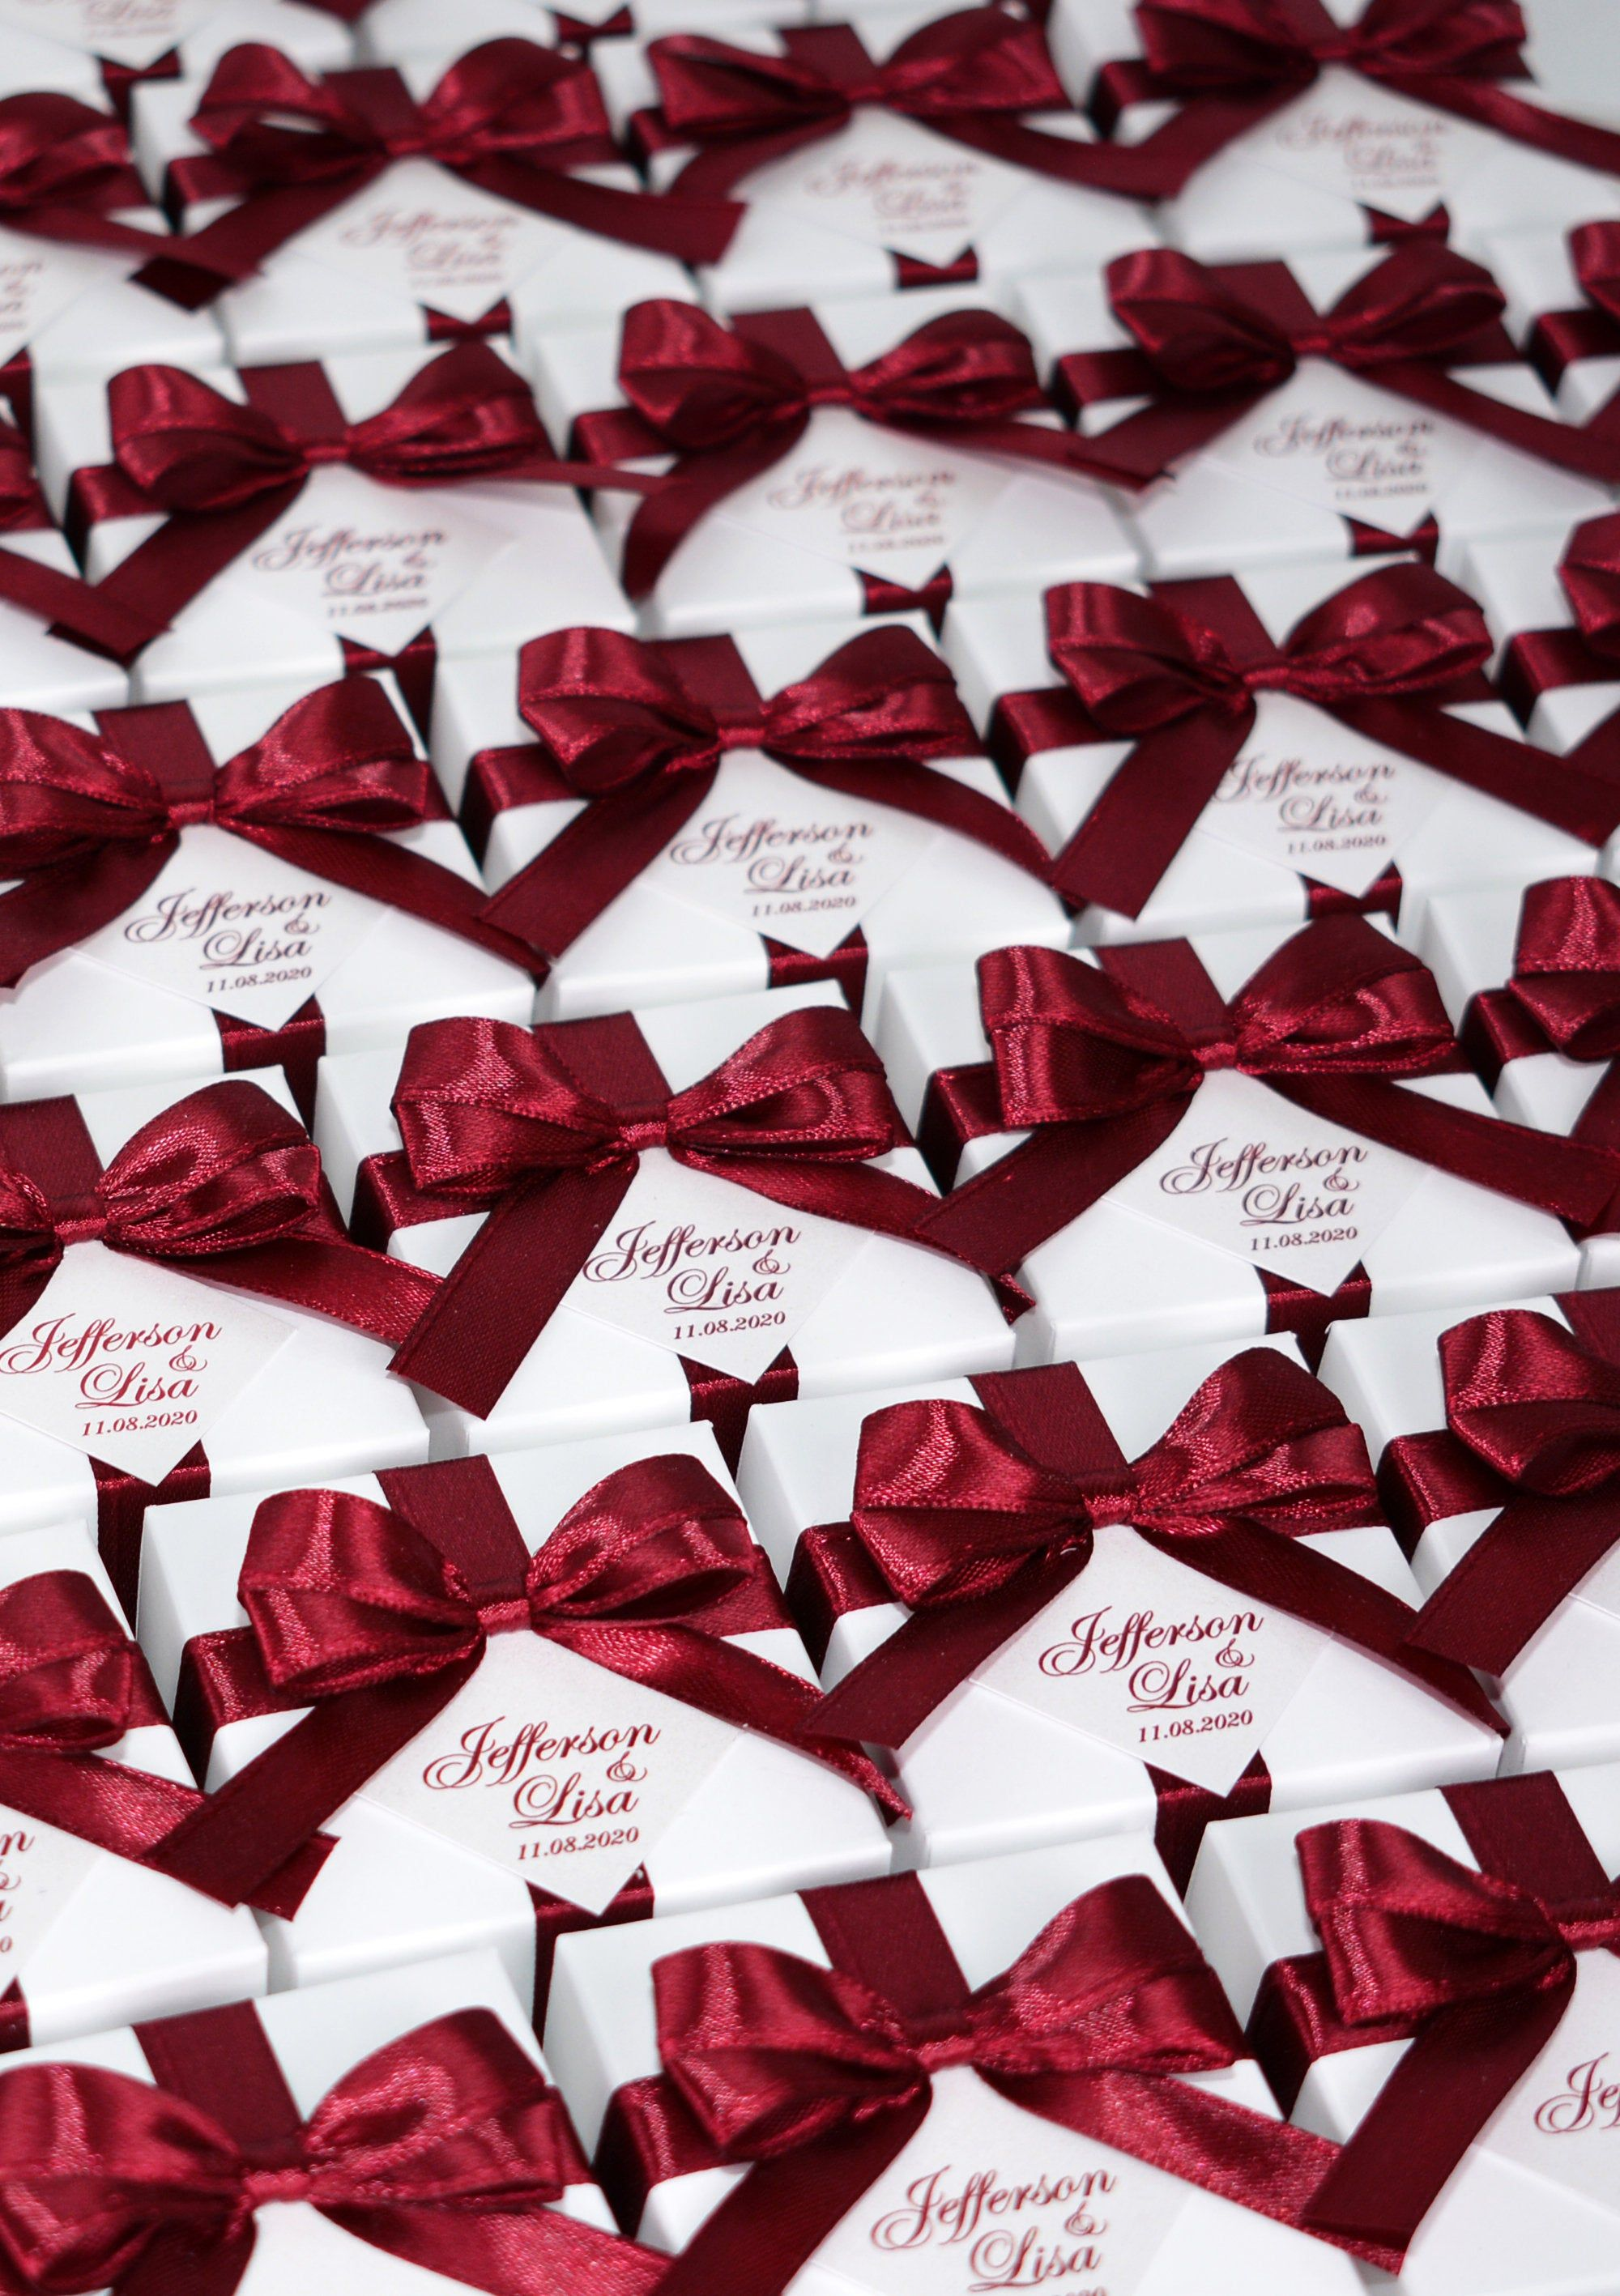 Elegant Wedding Bonbonniere Wedding Favor Boxes With Wine Burgundy Satin Ribbon Bow And Personalized Tag Custom Candy Box For Party Guests In 2020 Wedding Favor Boxes Wedding Candy Boxes Candy Wedding Favors